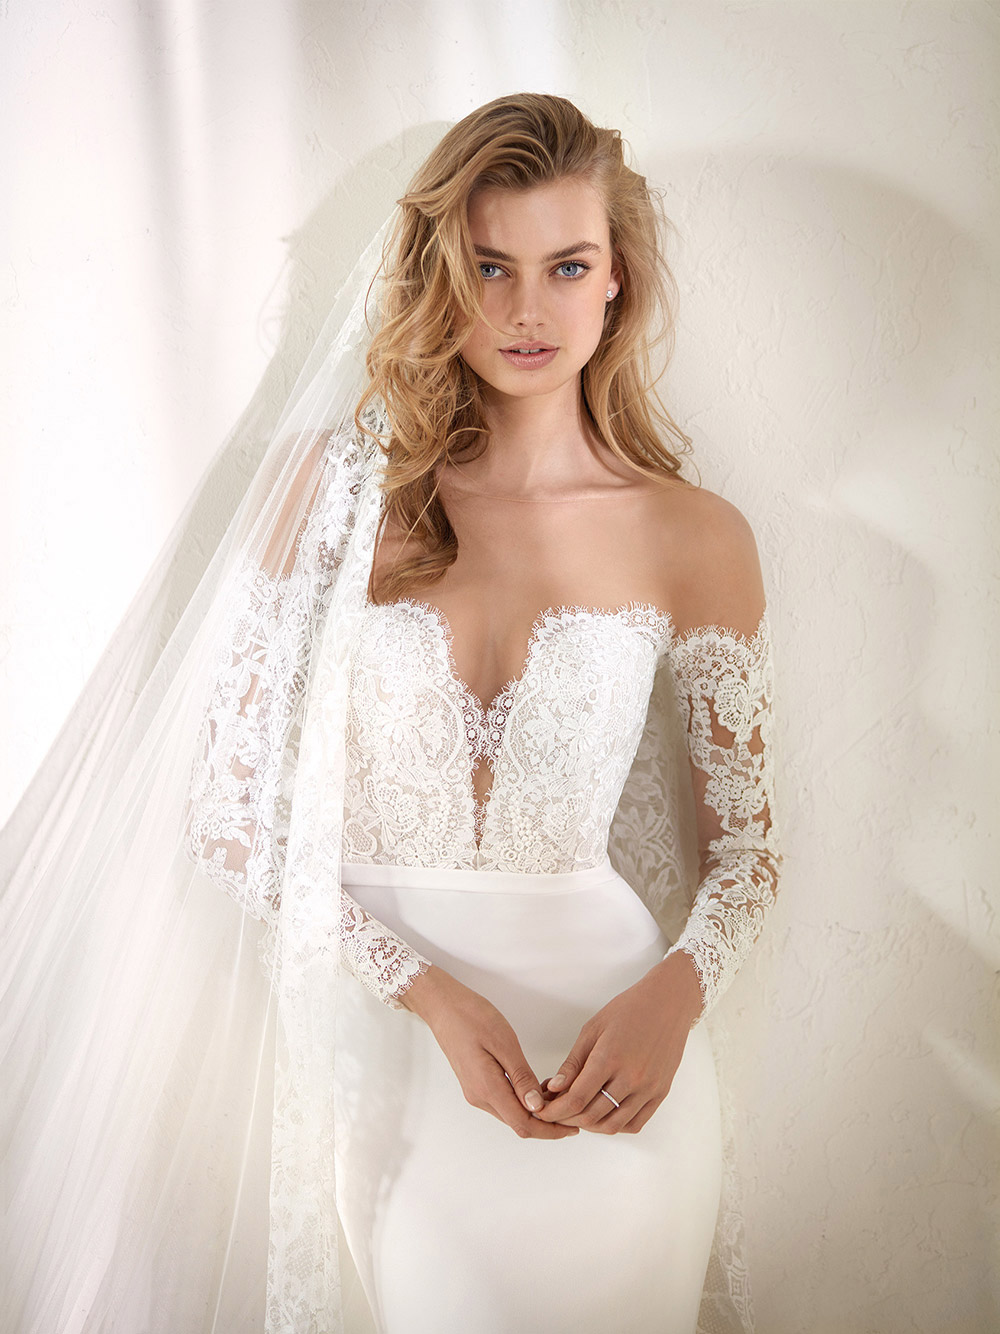 Dracma - Pronovias 2018 Bridal Collection. www.theweddingnotebook.com